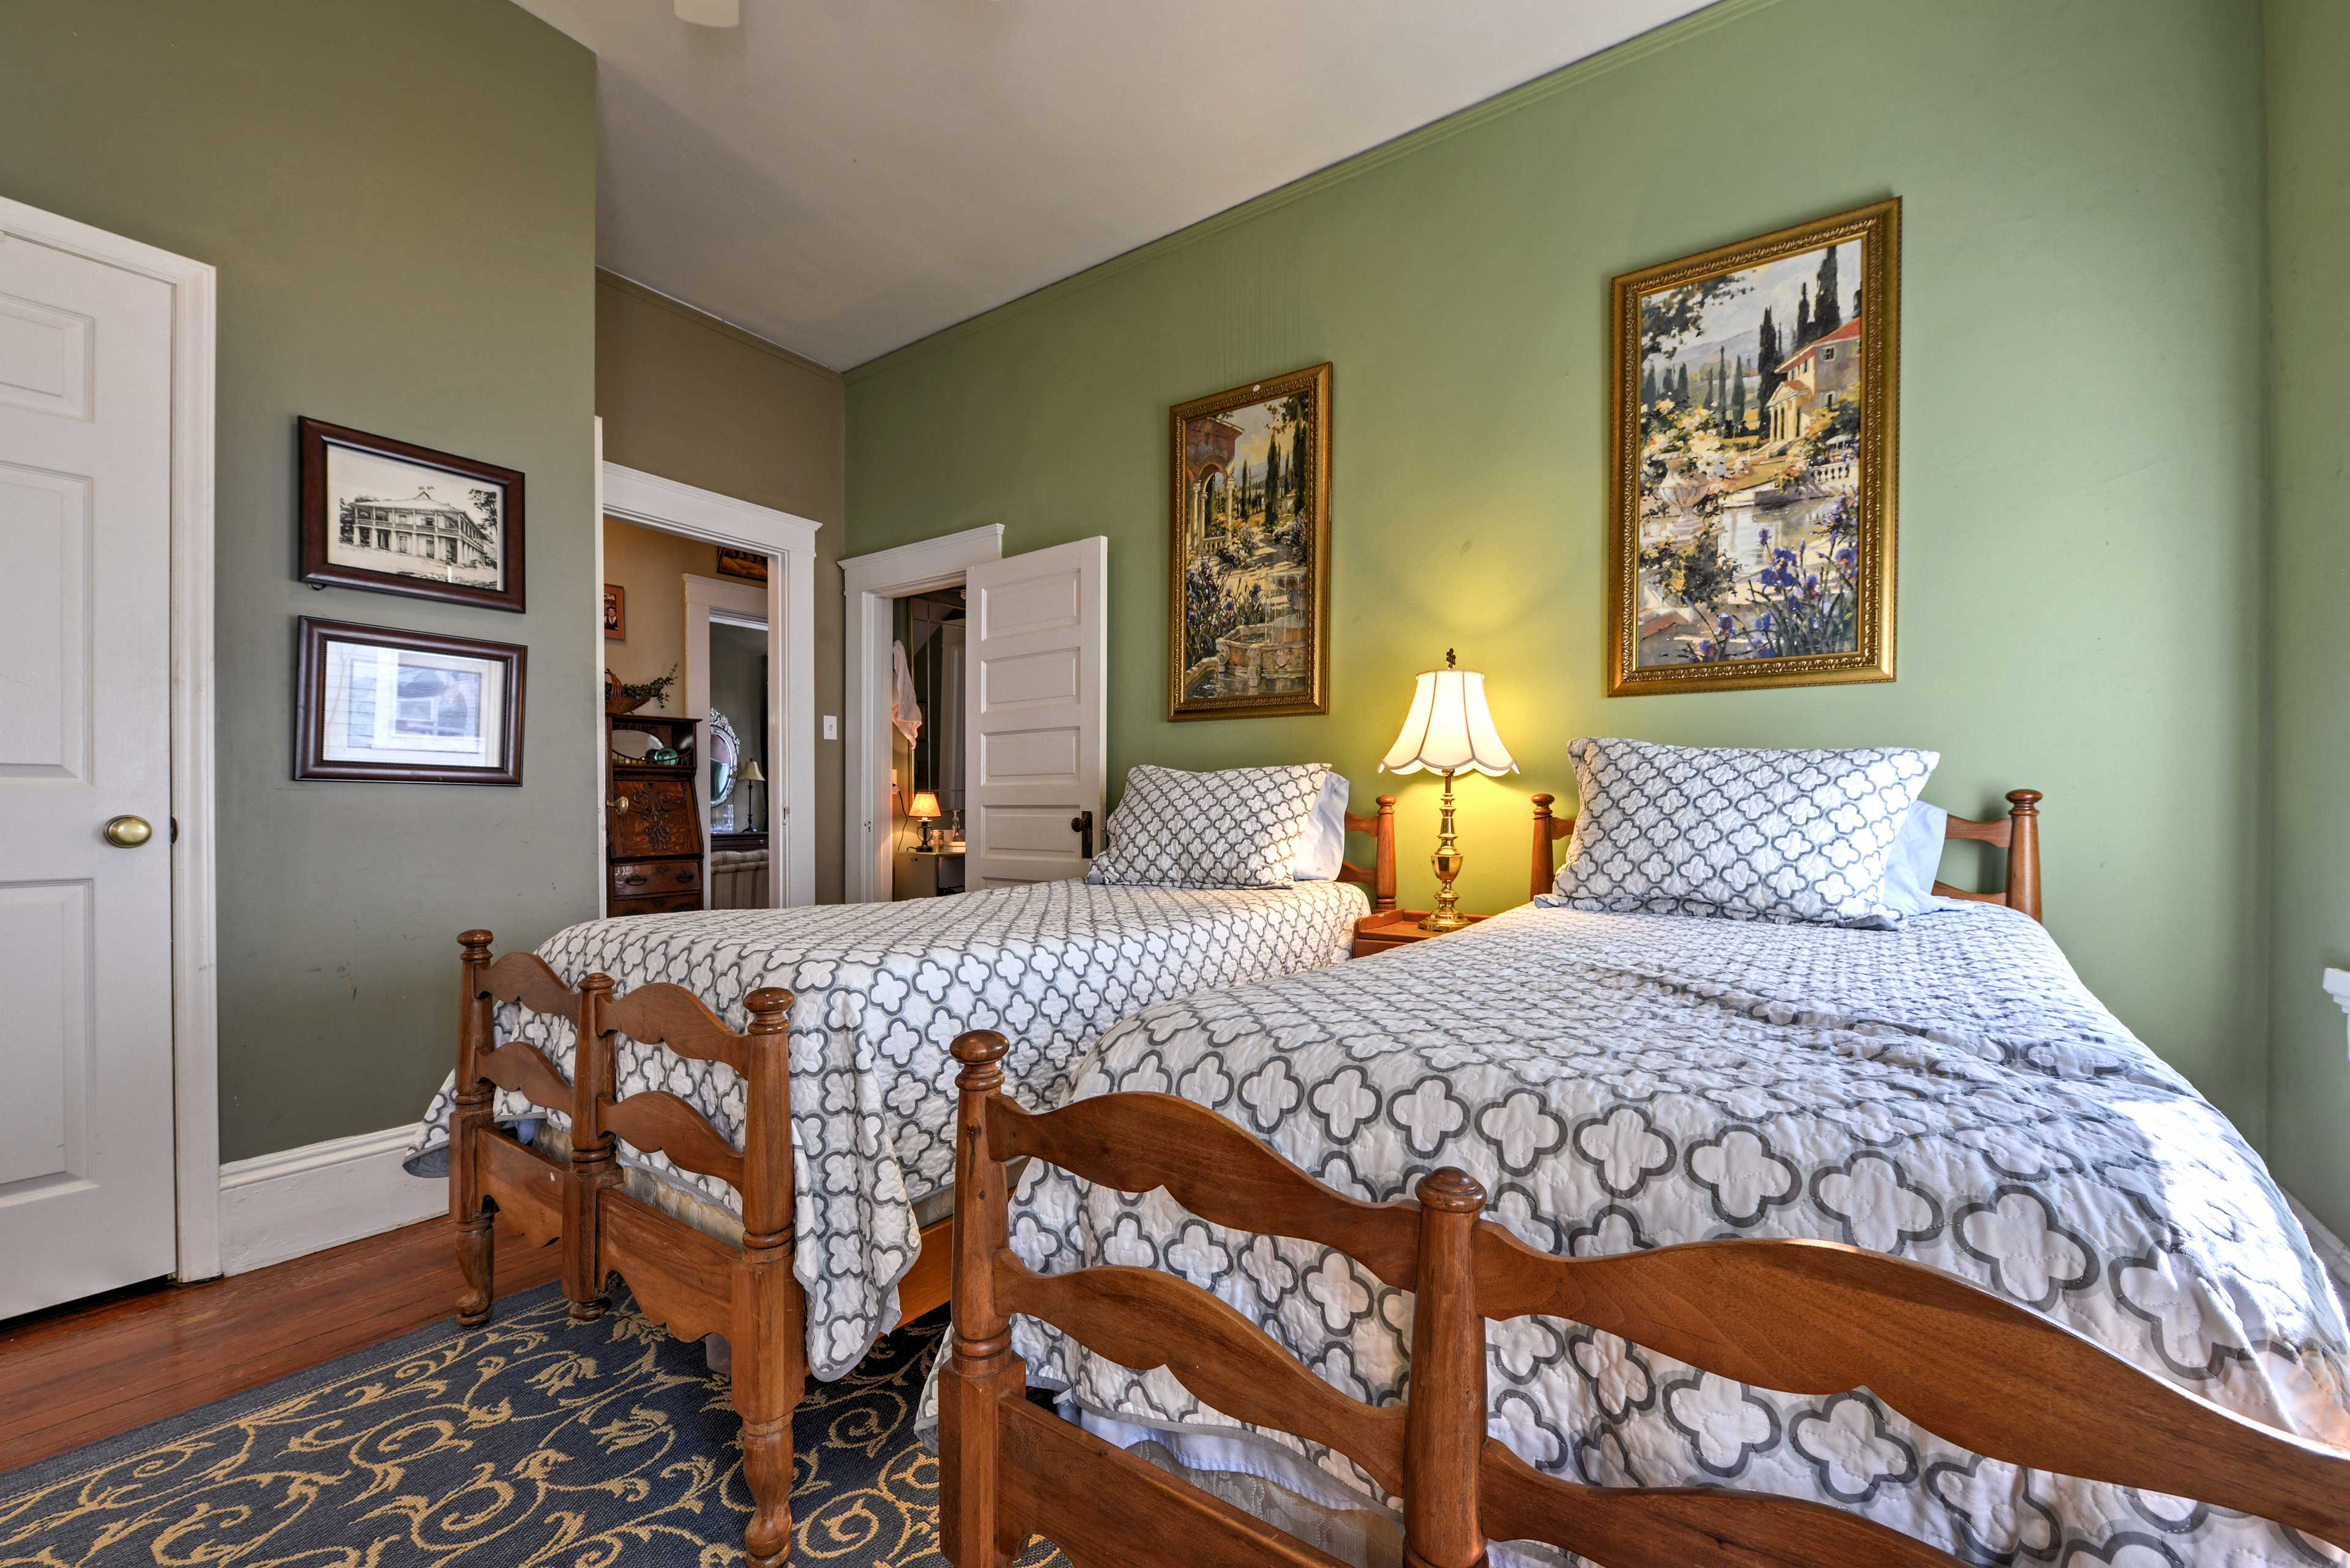 With 2 twin beds, this room sleeps 2.